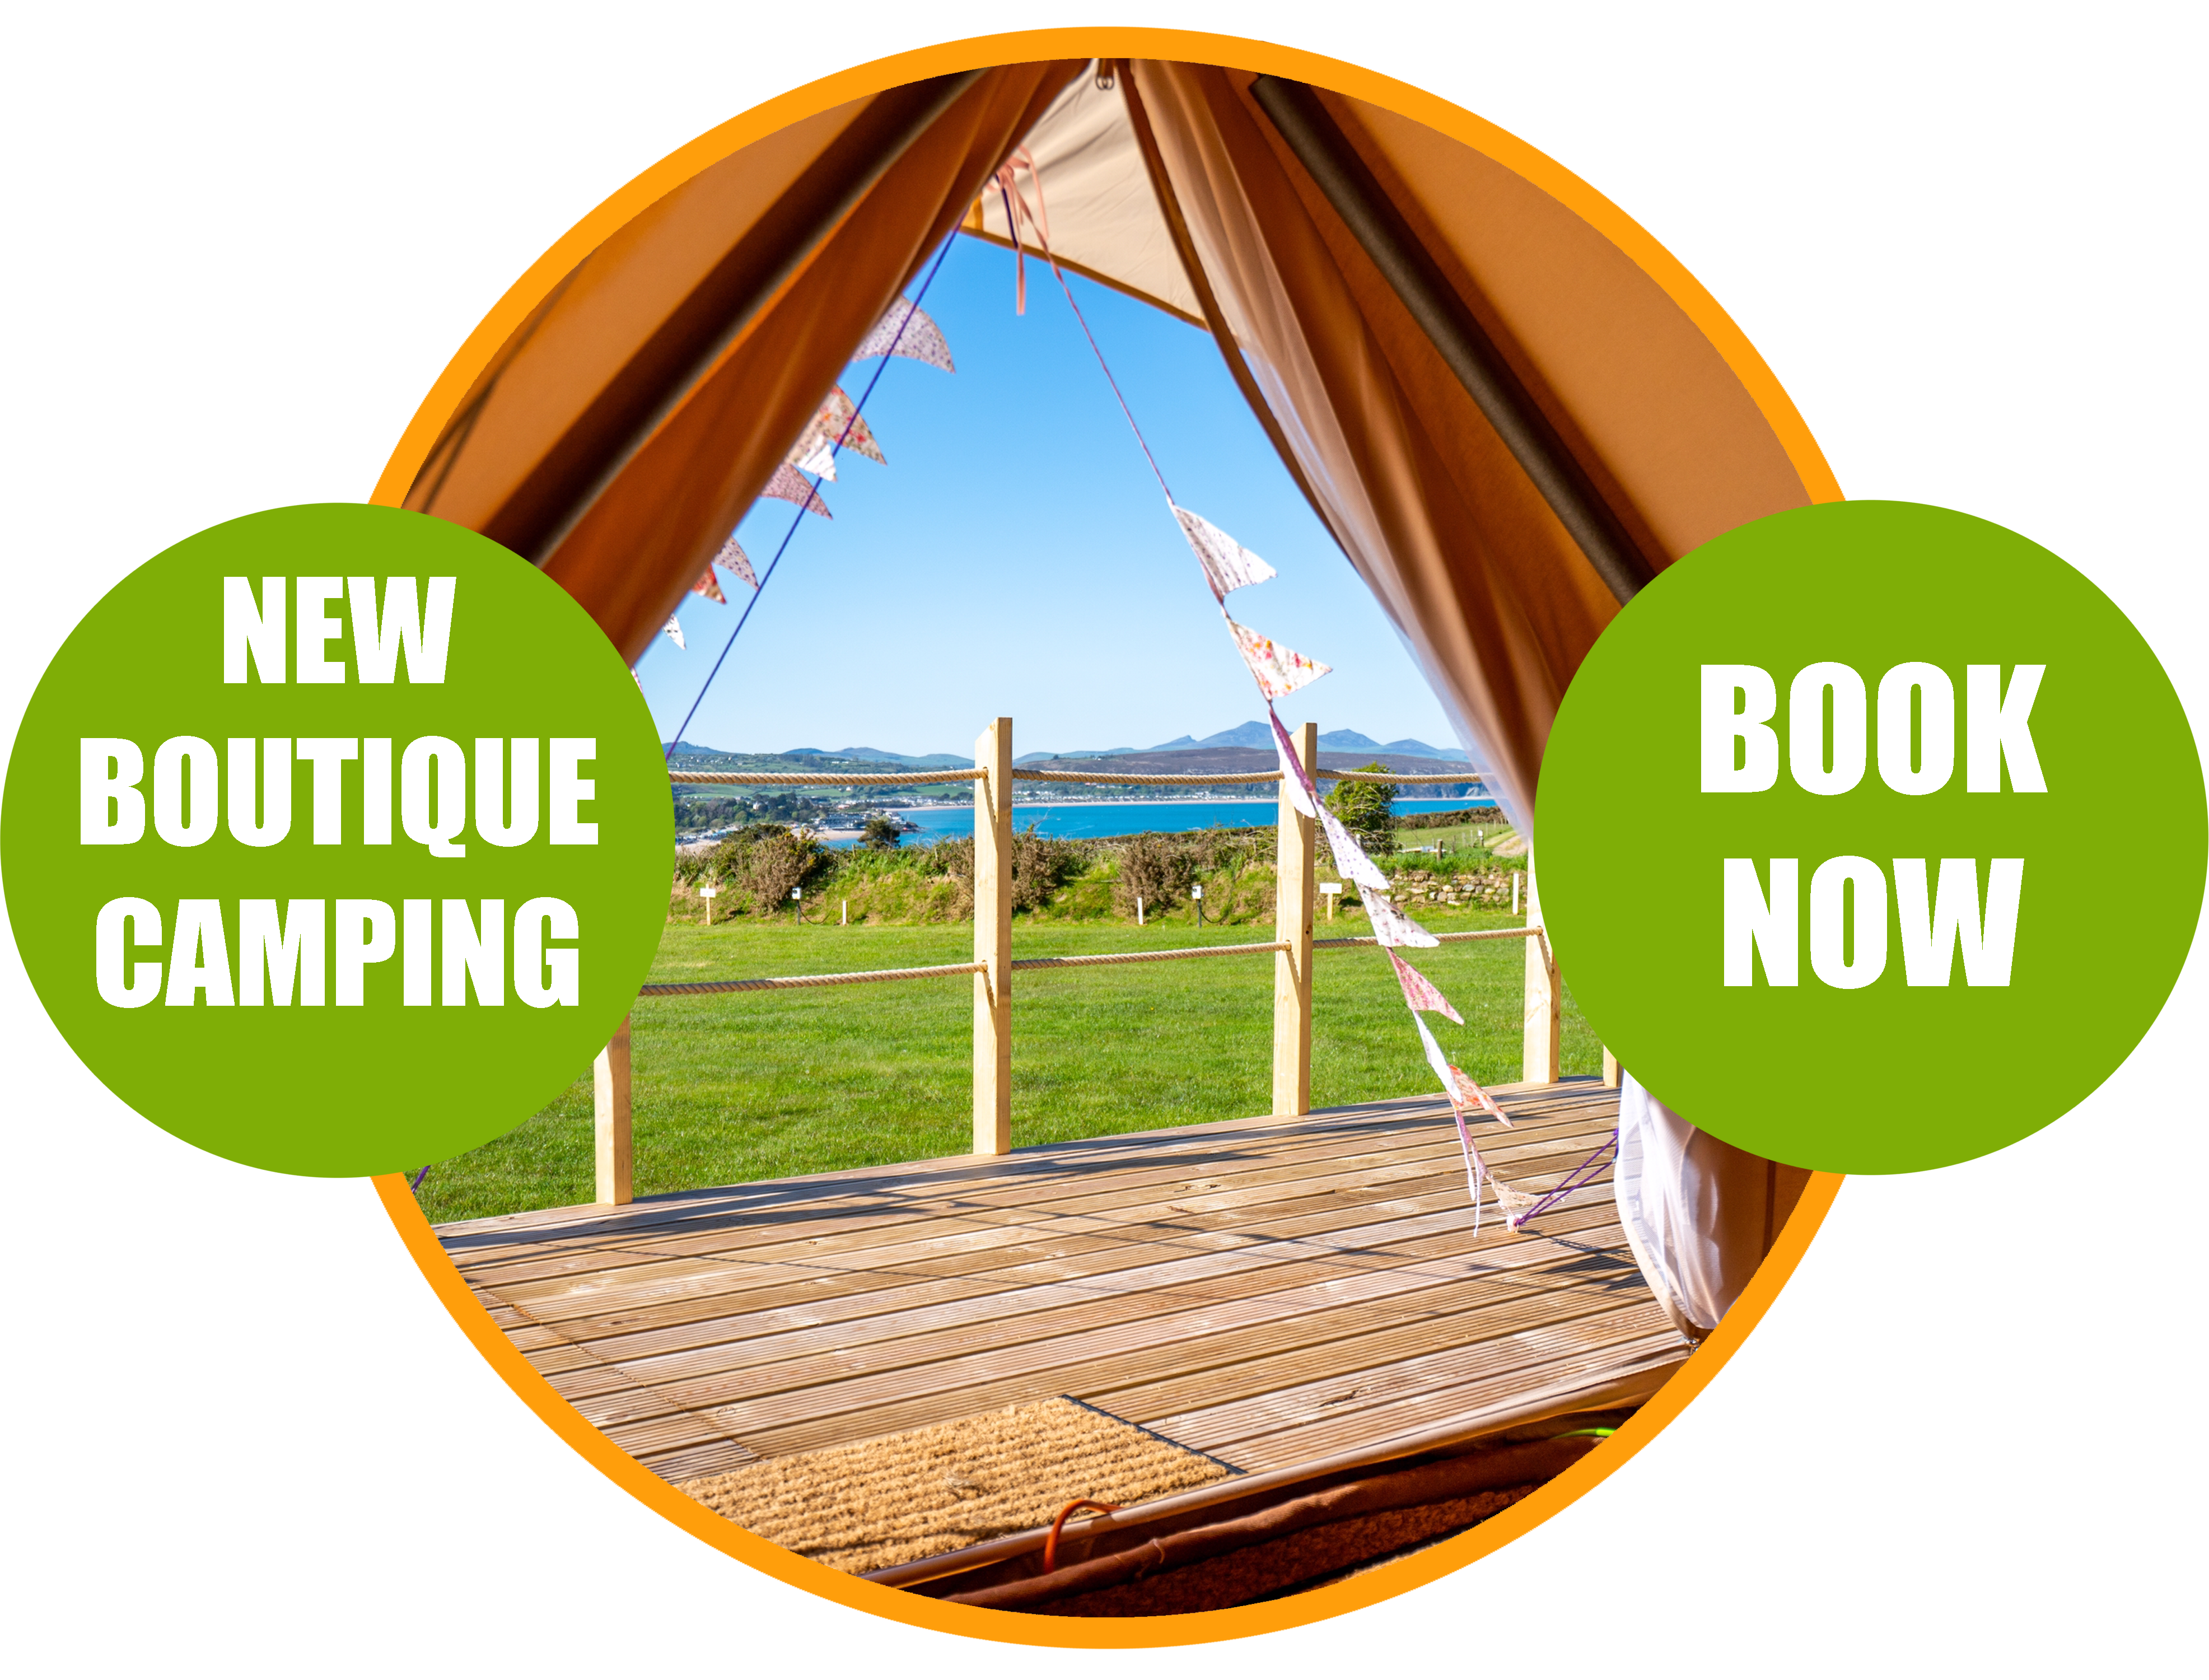 NEW BOUTIQUE CAMPING COMING IN MAY